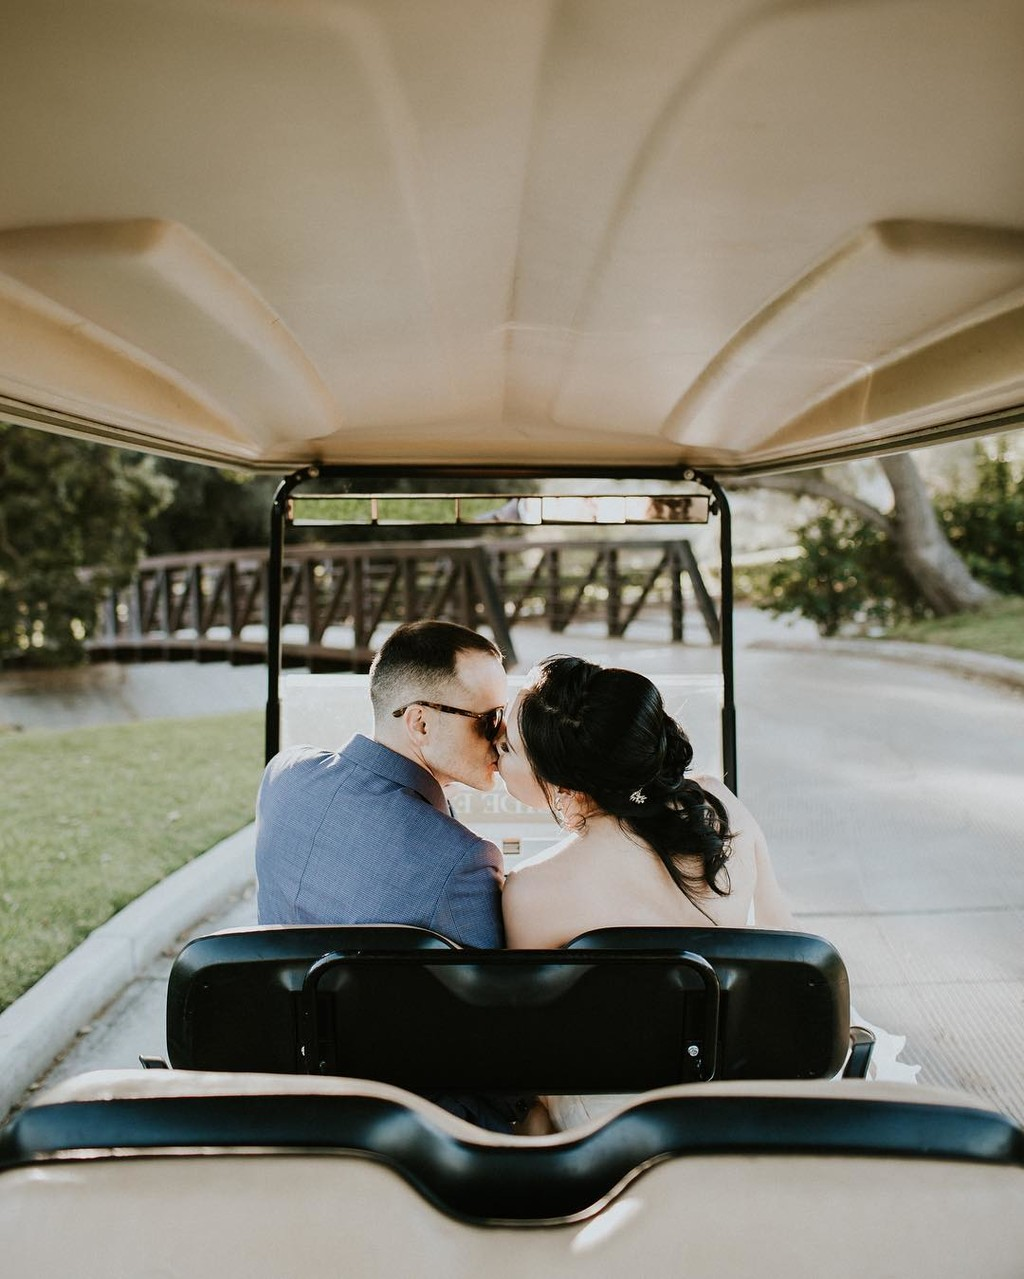 Why wait until you're out of the golf cart for a shot?